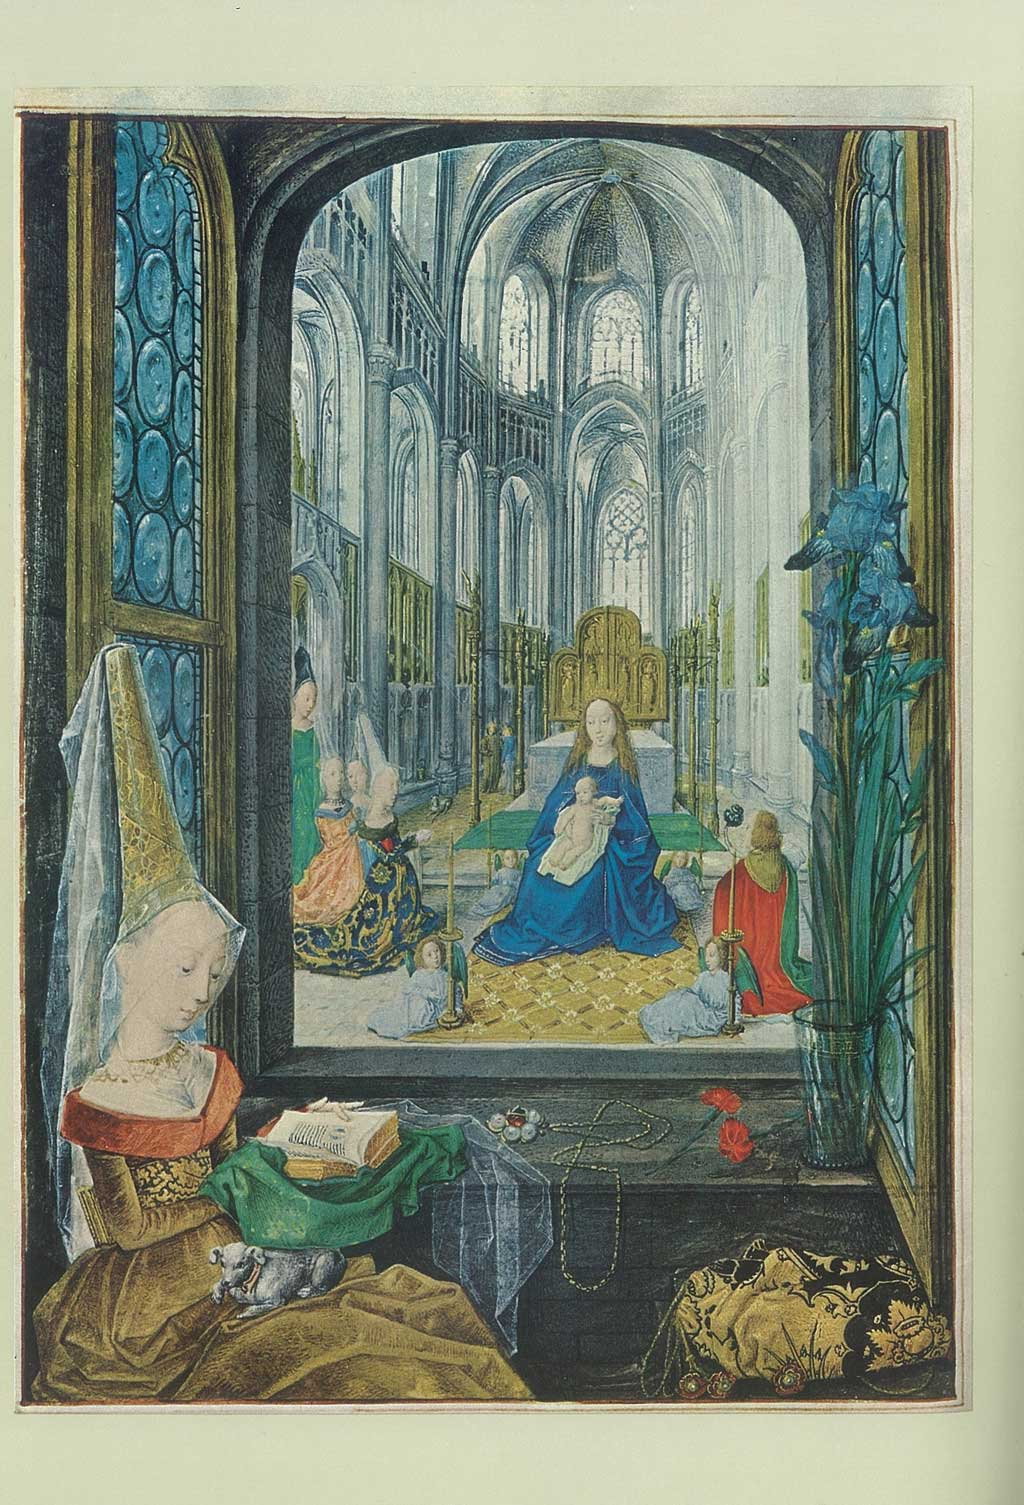 Painting of a woman reading a book, sitting in front of a miniature depiction of Mary with the child Jesus on her lap.